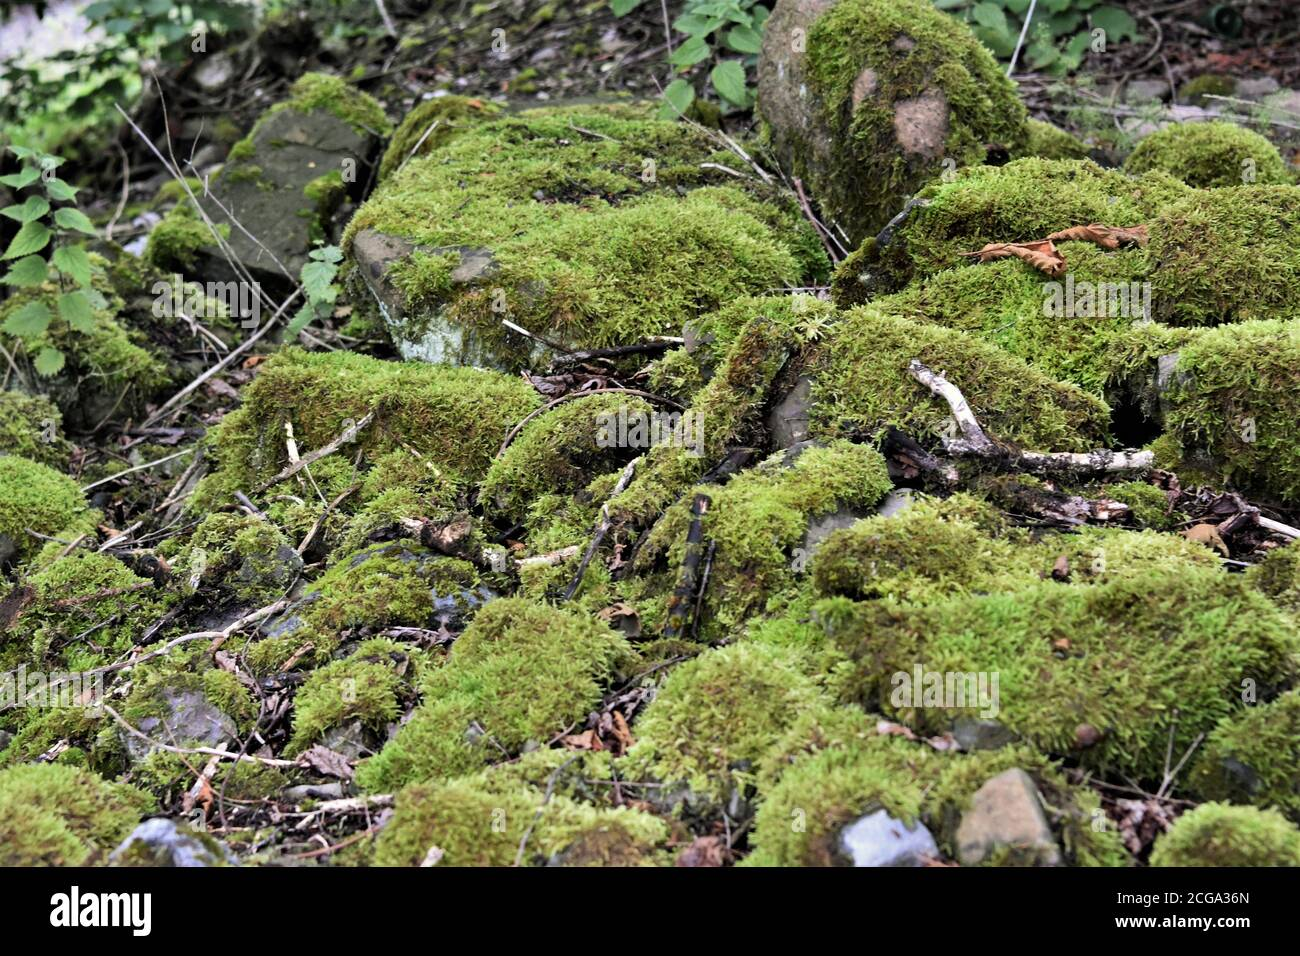 Vivid green moss growing on the small pile of stones  in the forest in Switzerland near tourist path leading to village Urdorf during summer. Stock Photo